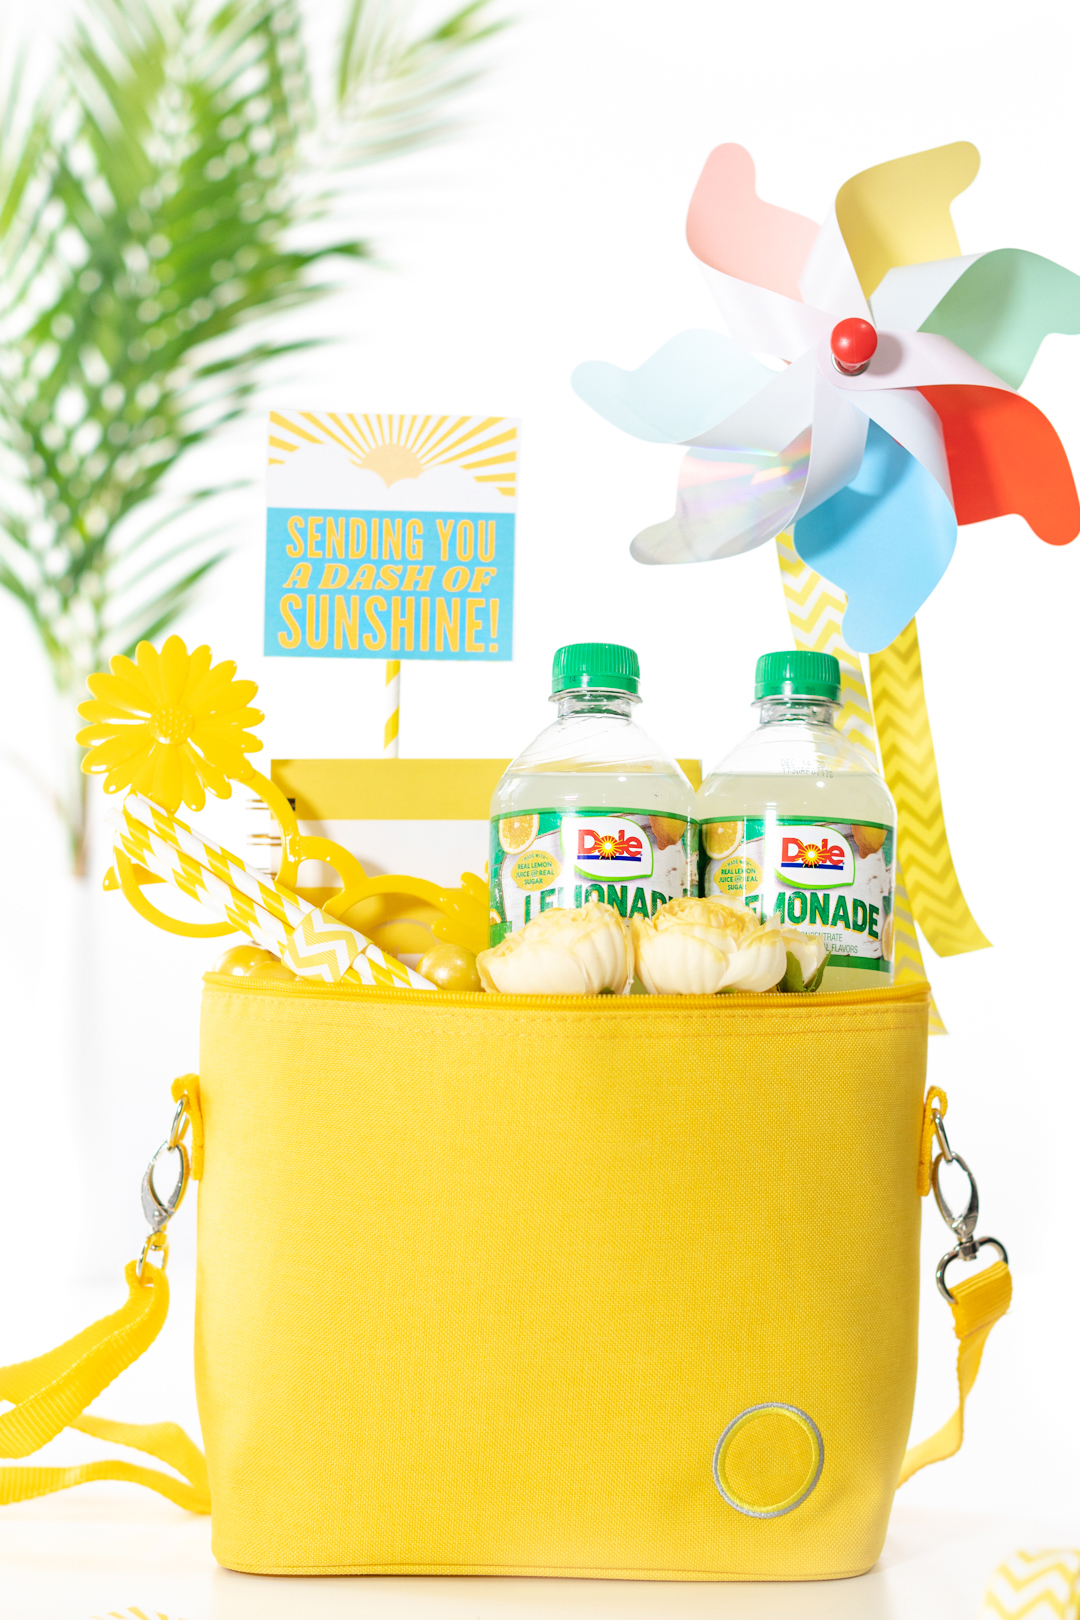 Fun sunshine mini cooler filled with cold drinks, novelty trinkets for a surprise delivery